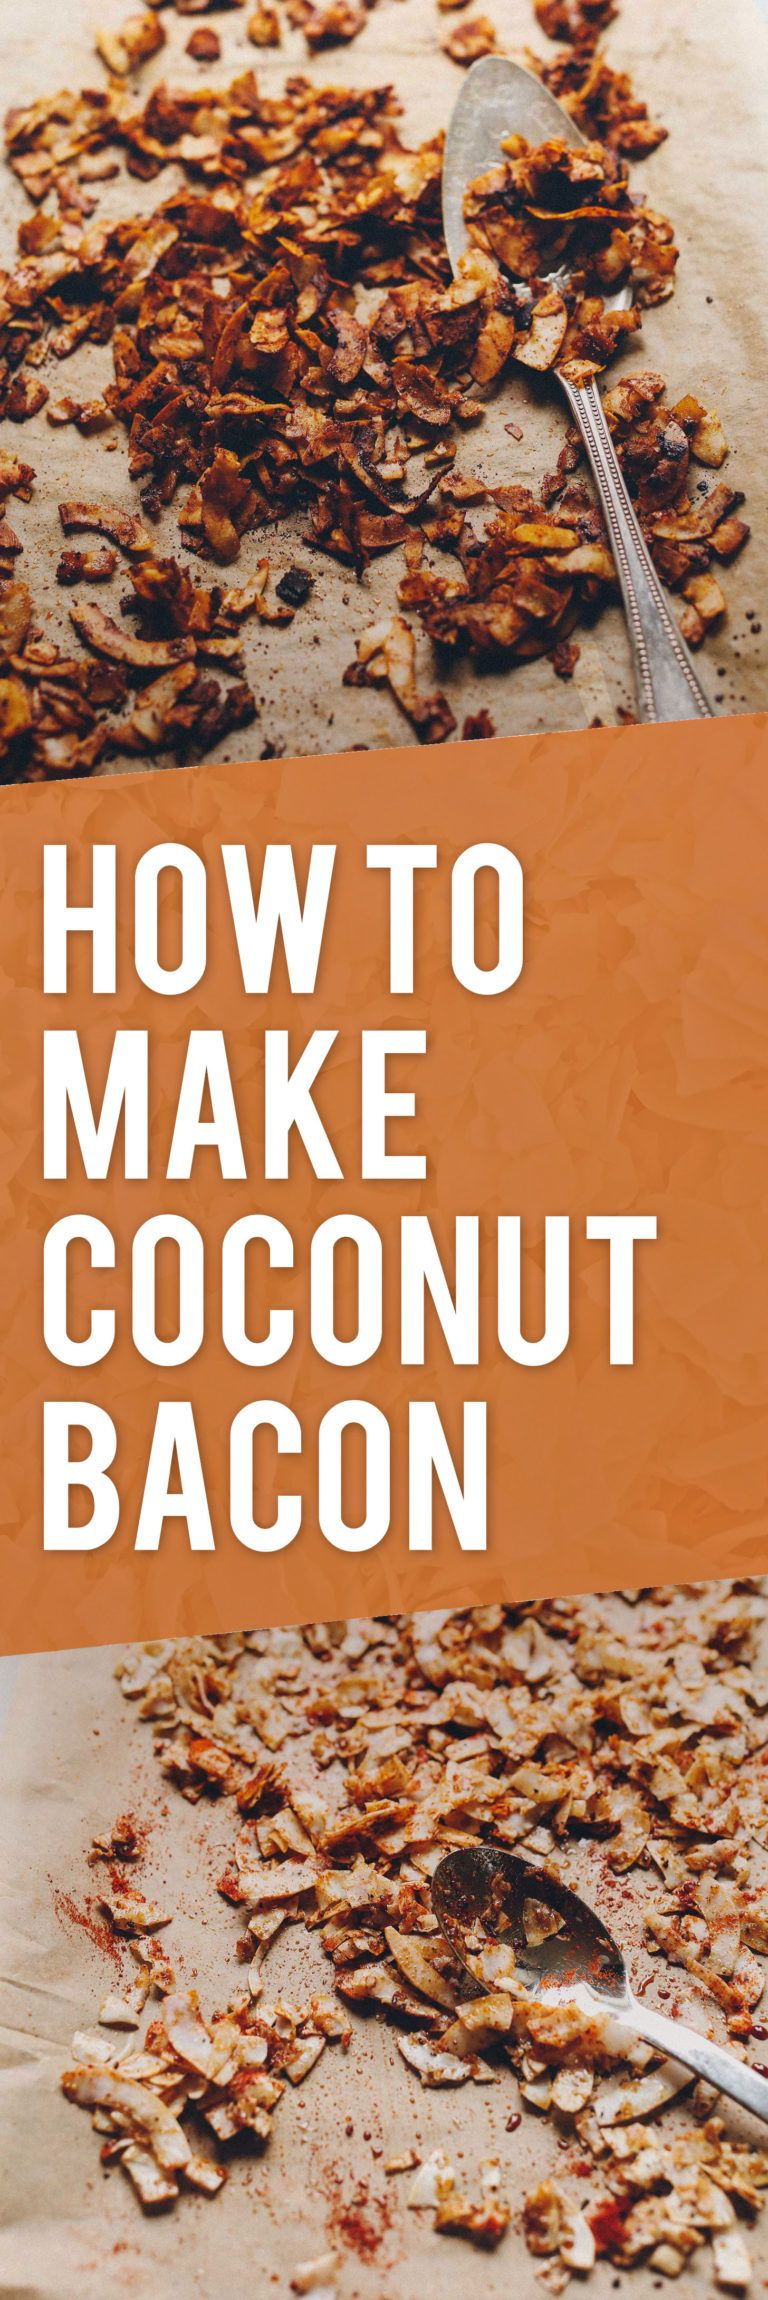 HOW TO MAKE Coconut Bacon! 15 minutes, quick, easy, flavorful!